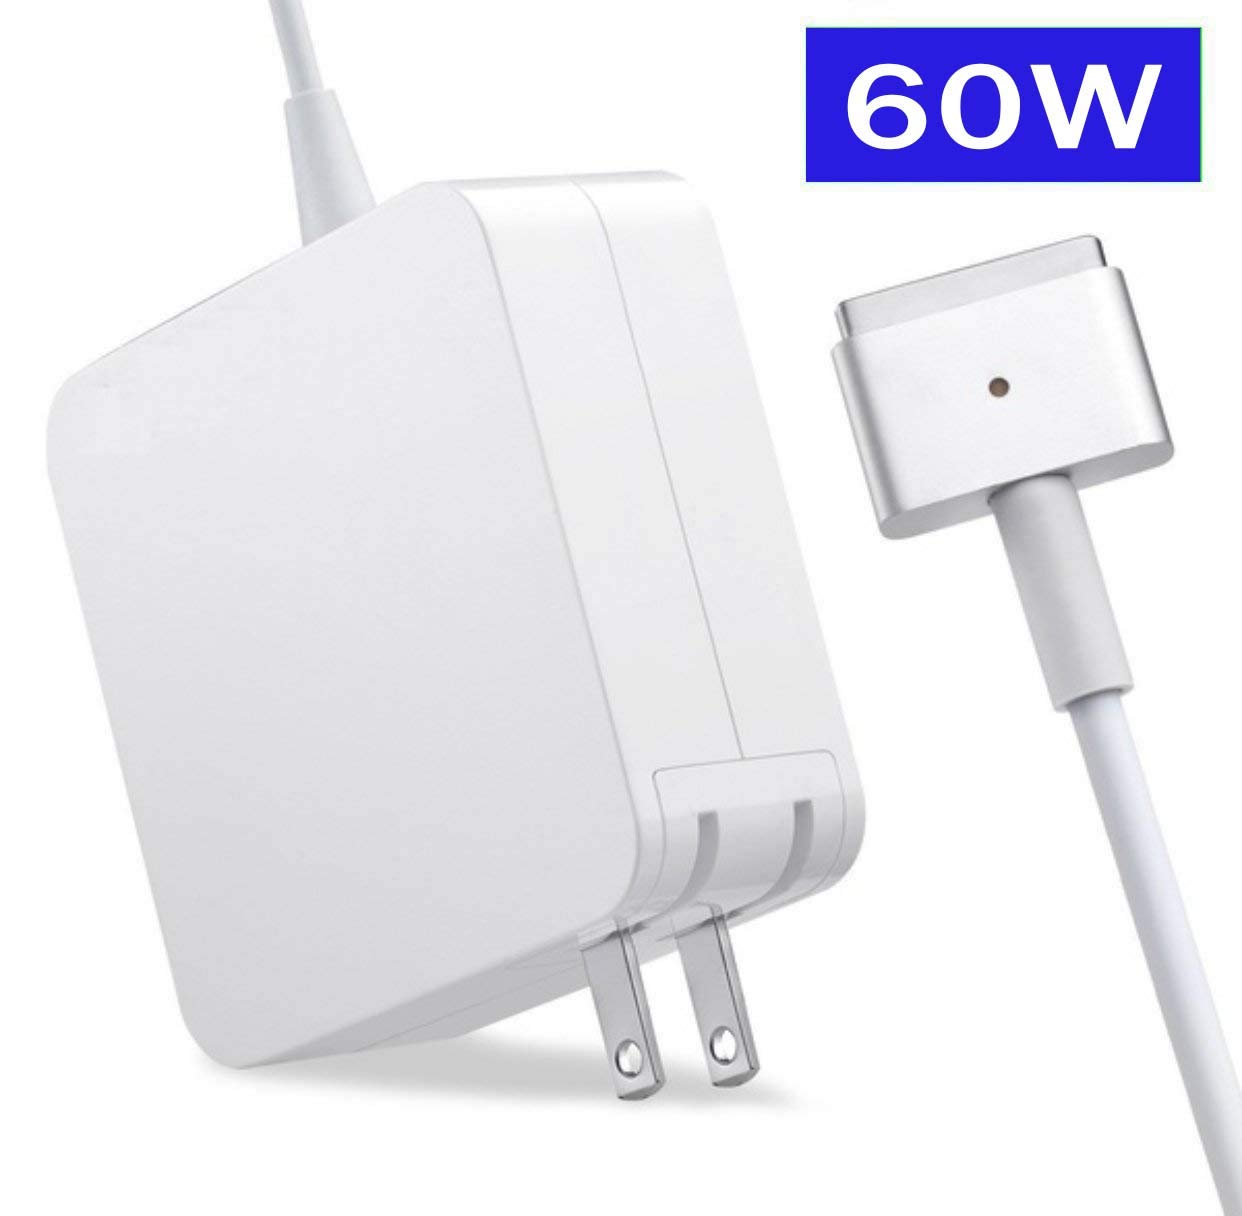 Sunggo Power Adapter Charger,60W T-Tip Replacement Charger Compatible MacBook Pro 13inch - After Late 2012